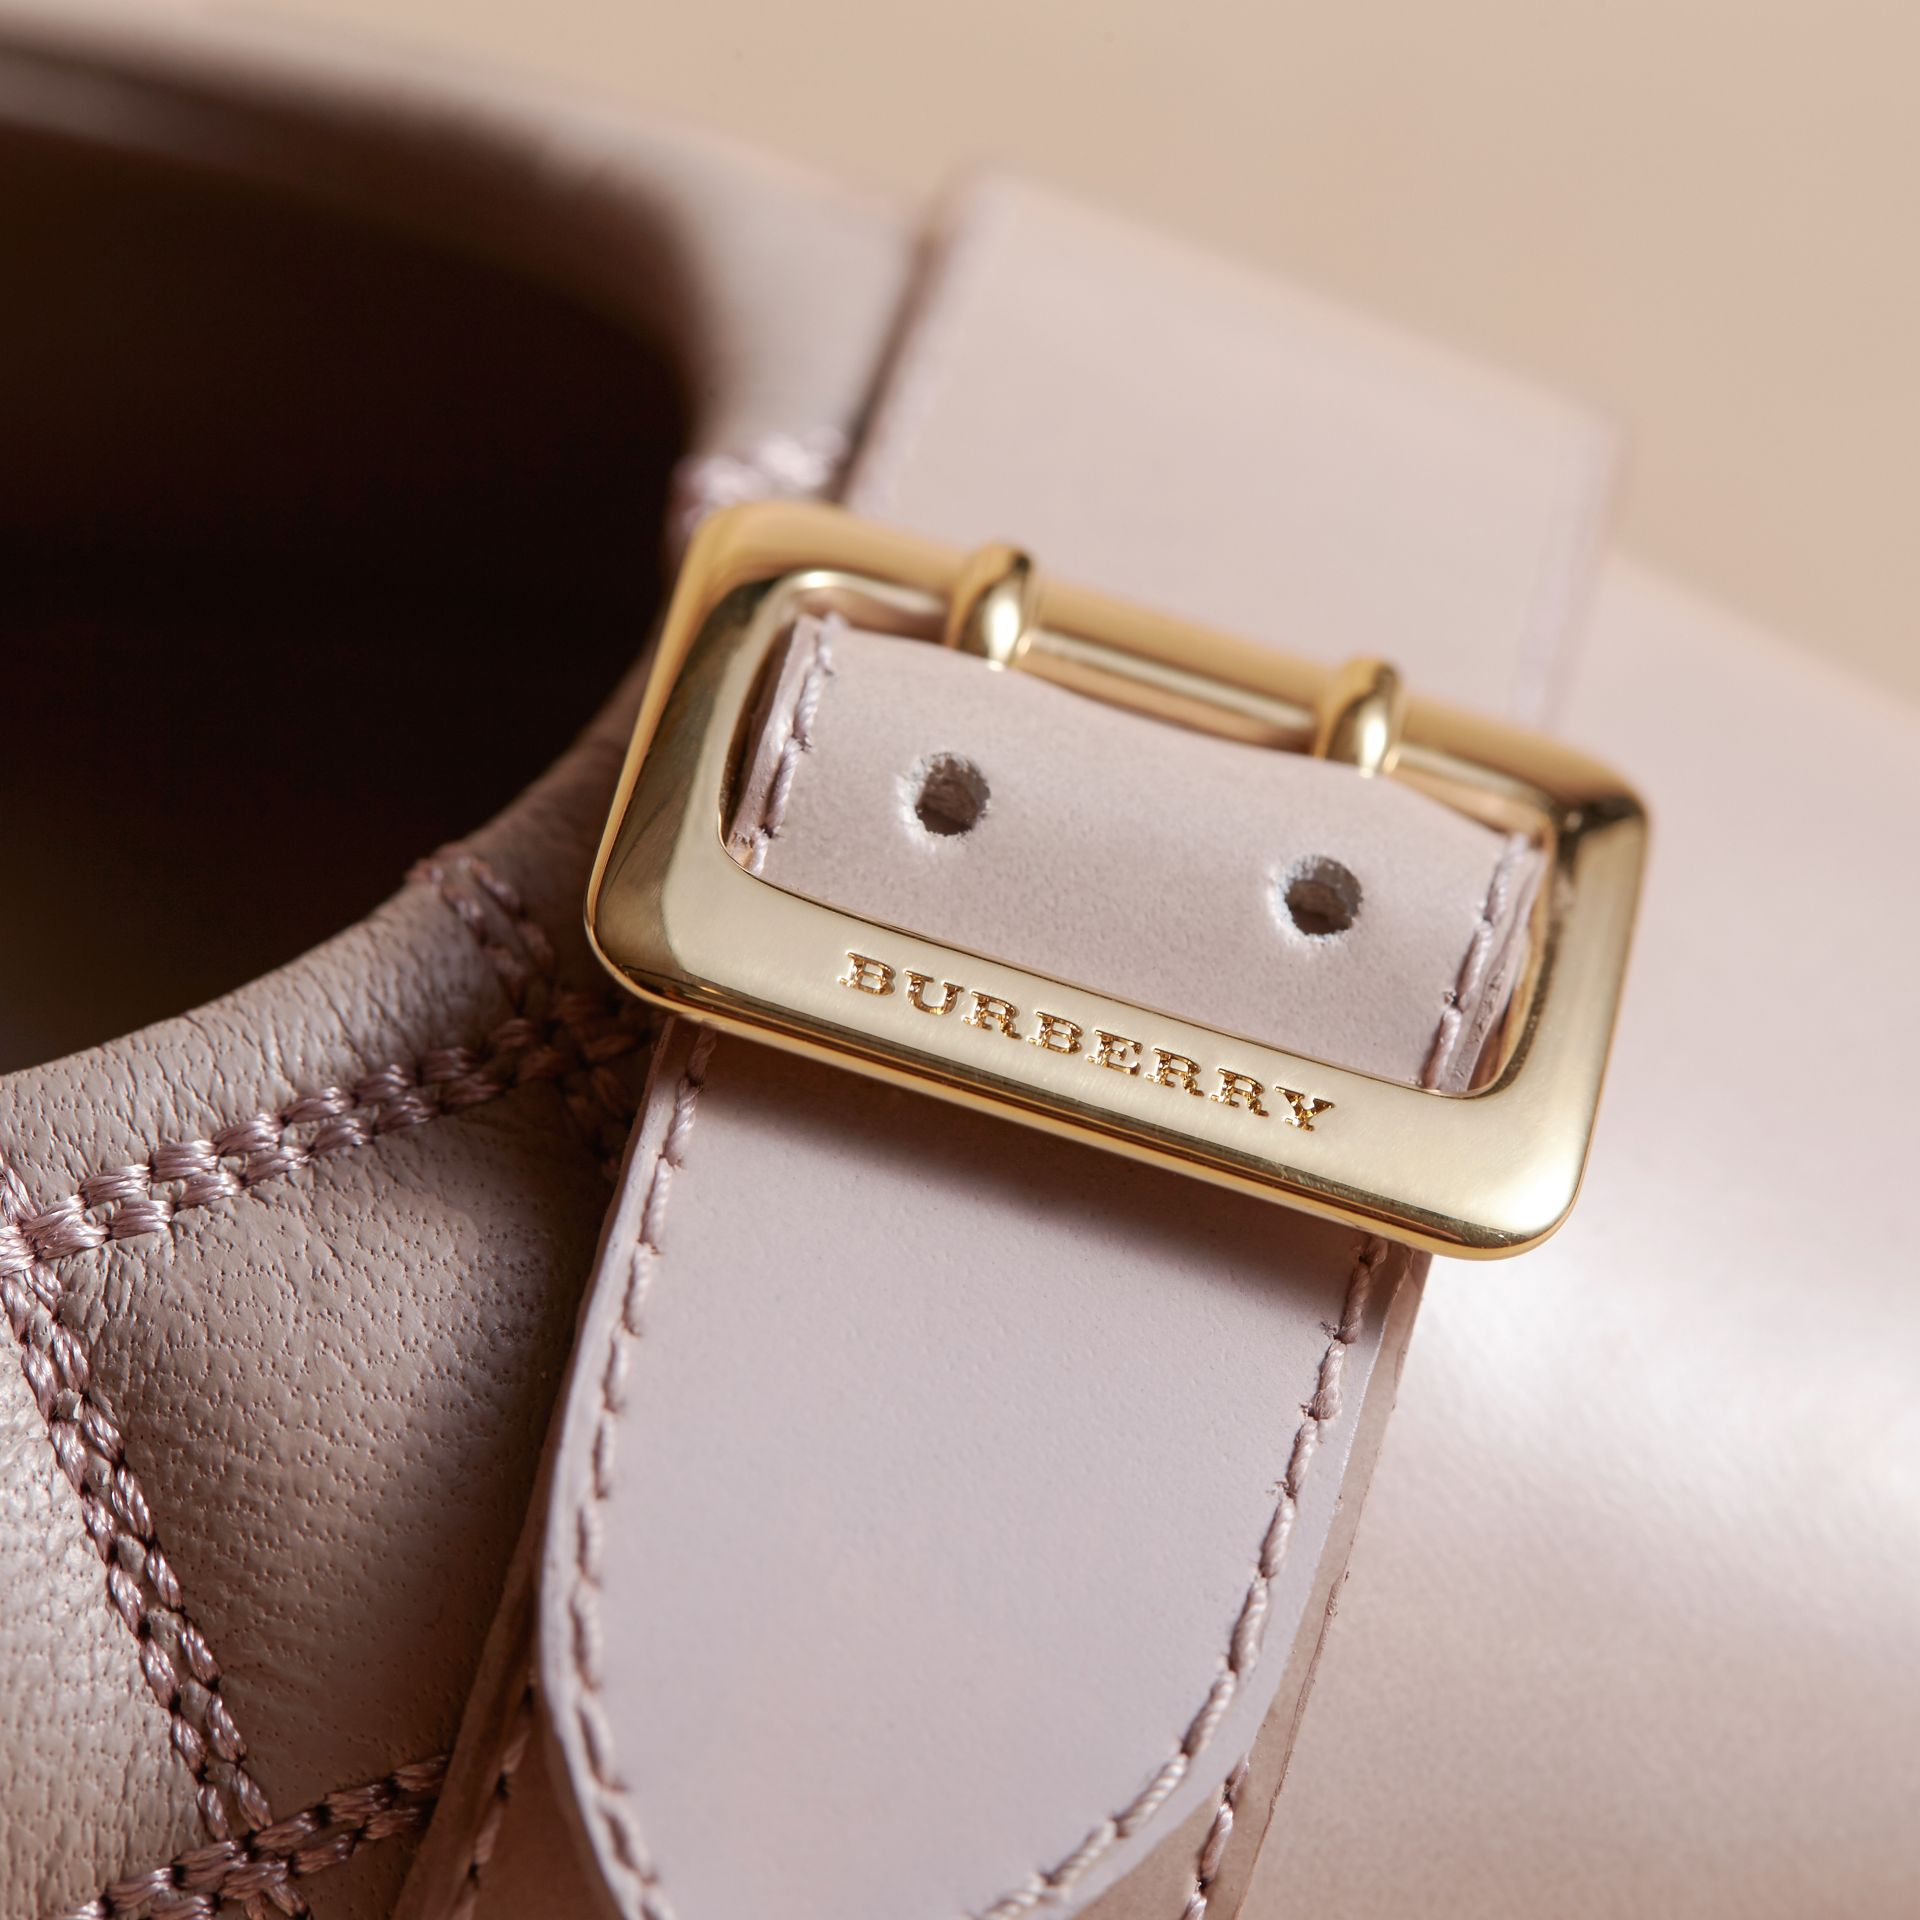 Buckle Detail Quilted Lambskin Leather Ballerinas in Ivory Pink - Women | Burberry - gallery image 2